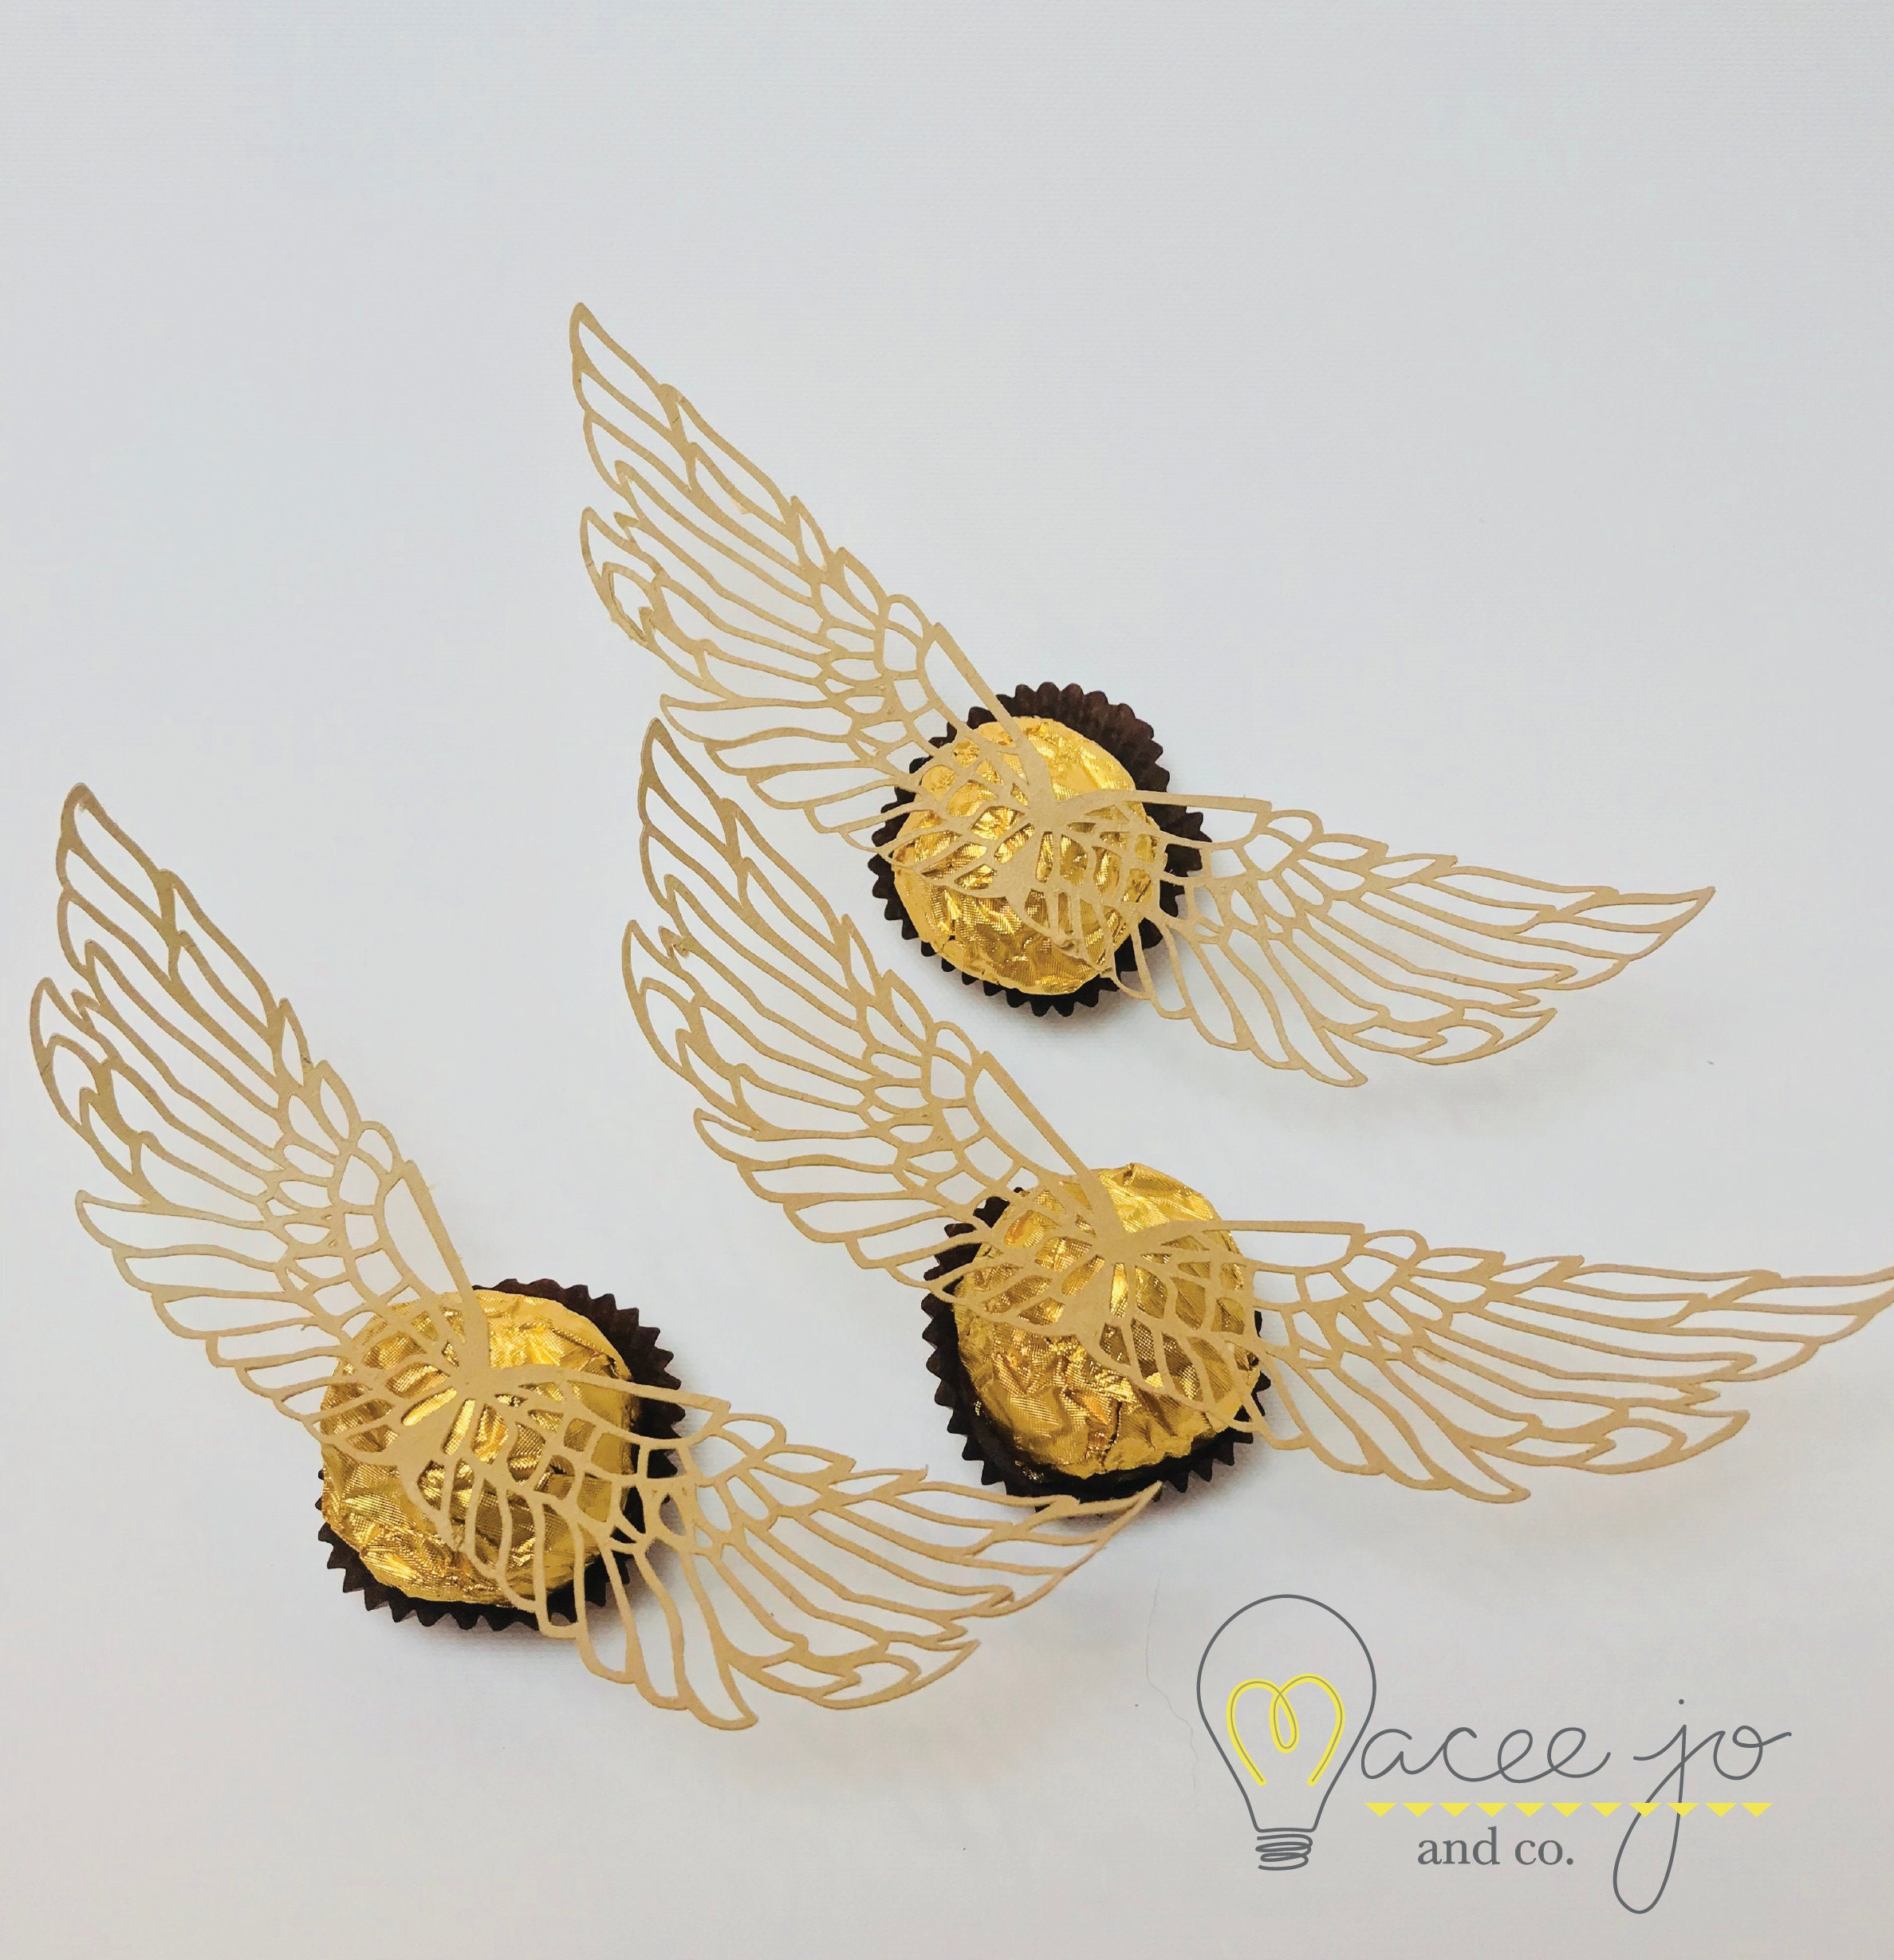 This is a photo of Juicy Printable Snitch Wings